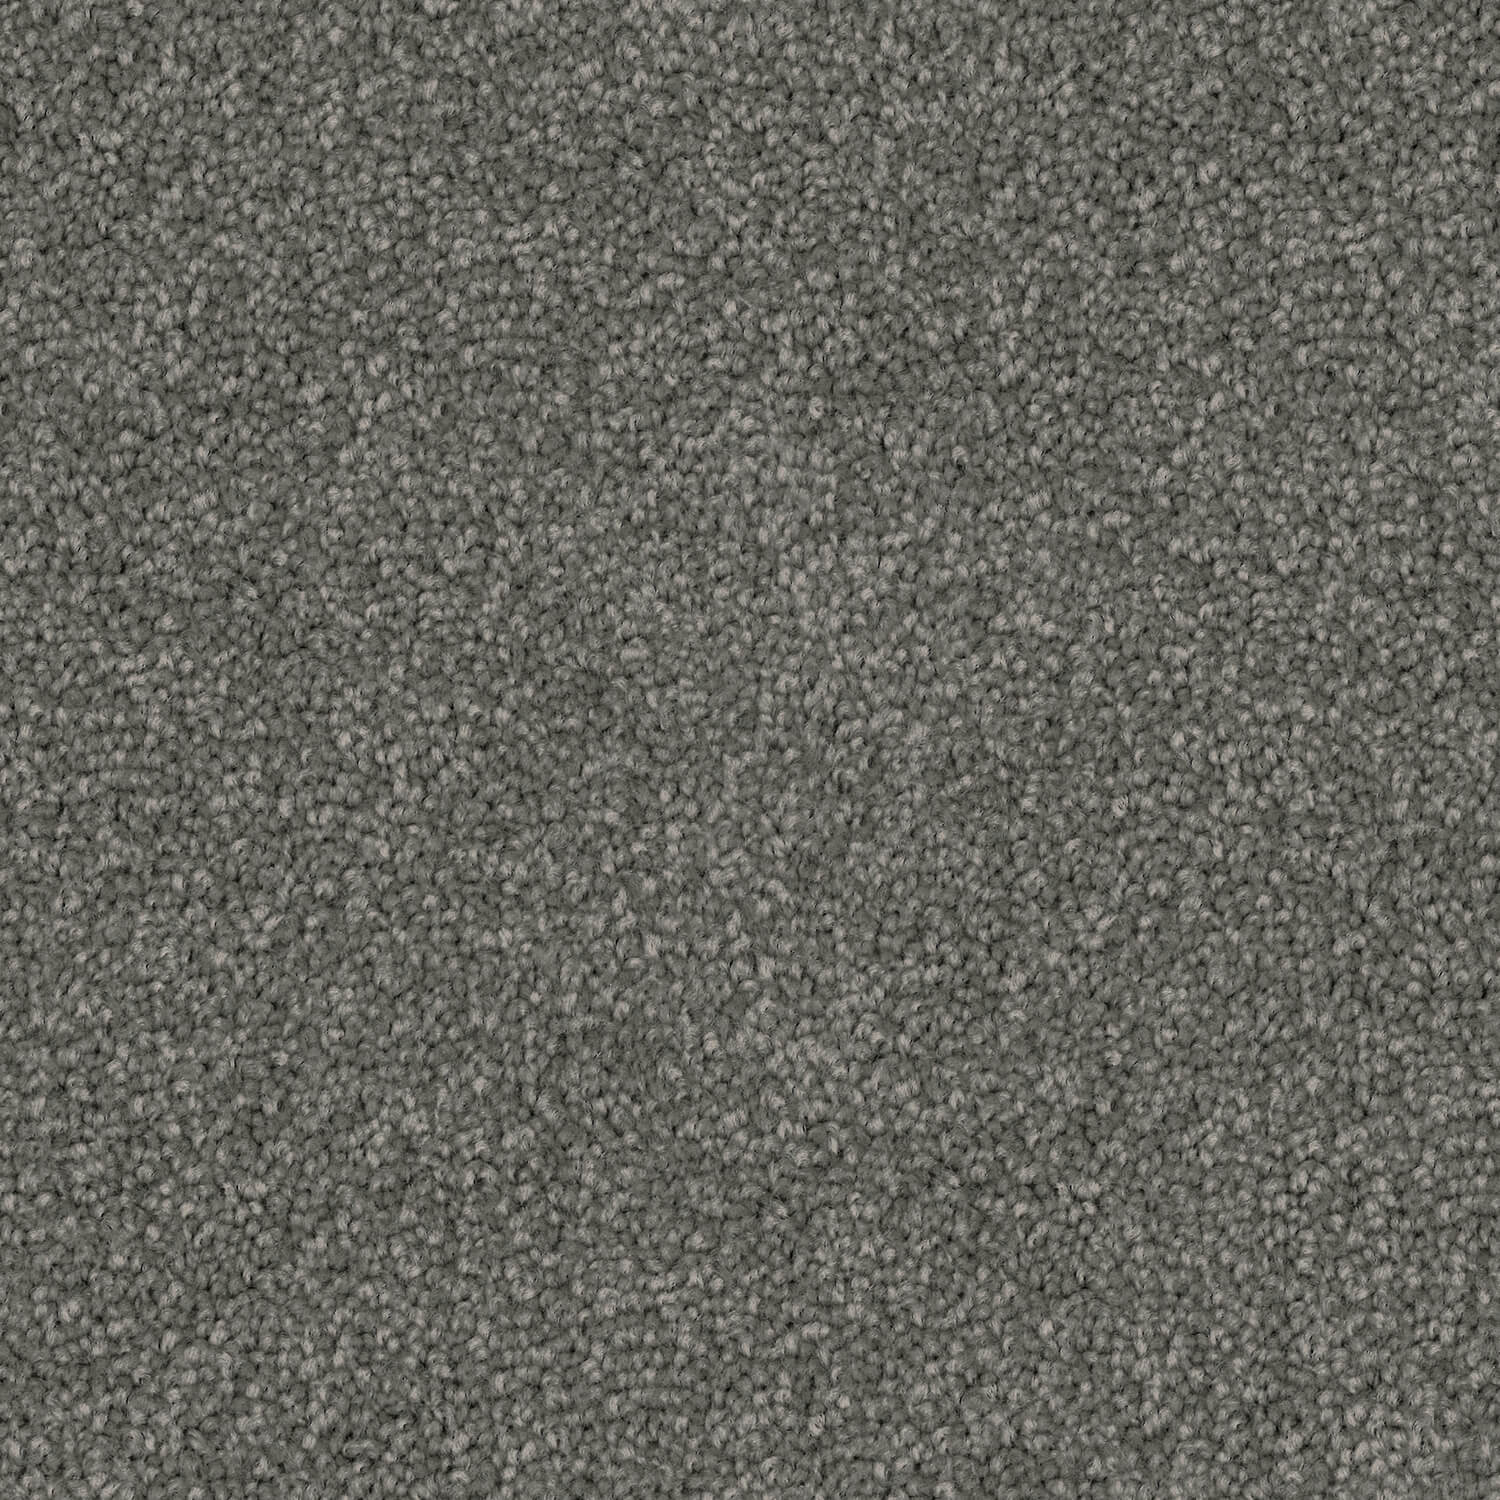 First View carpet color 95 Marble